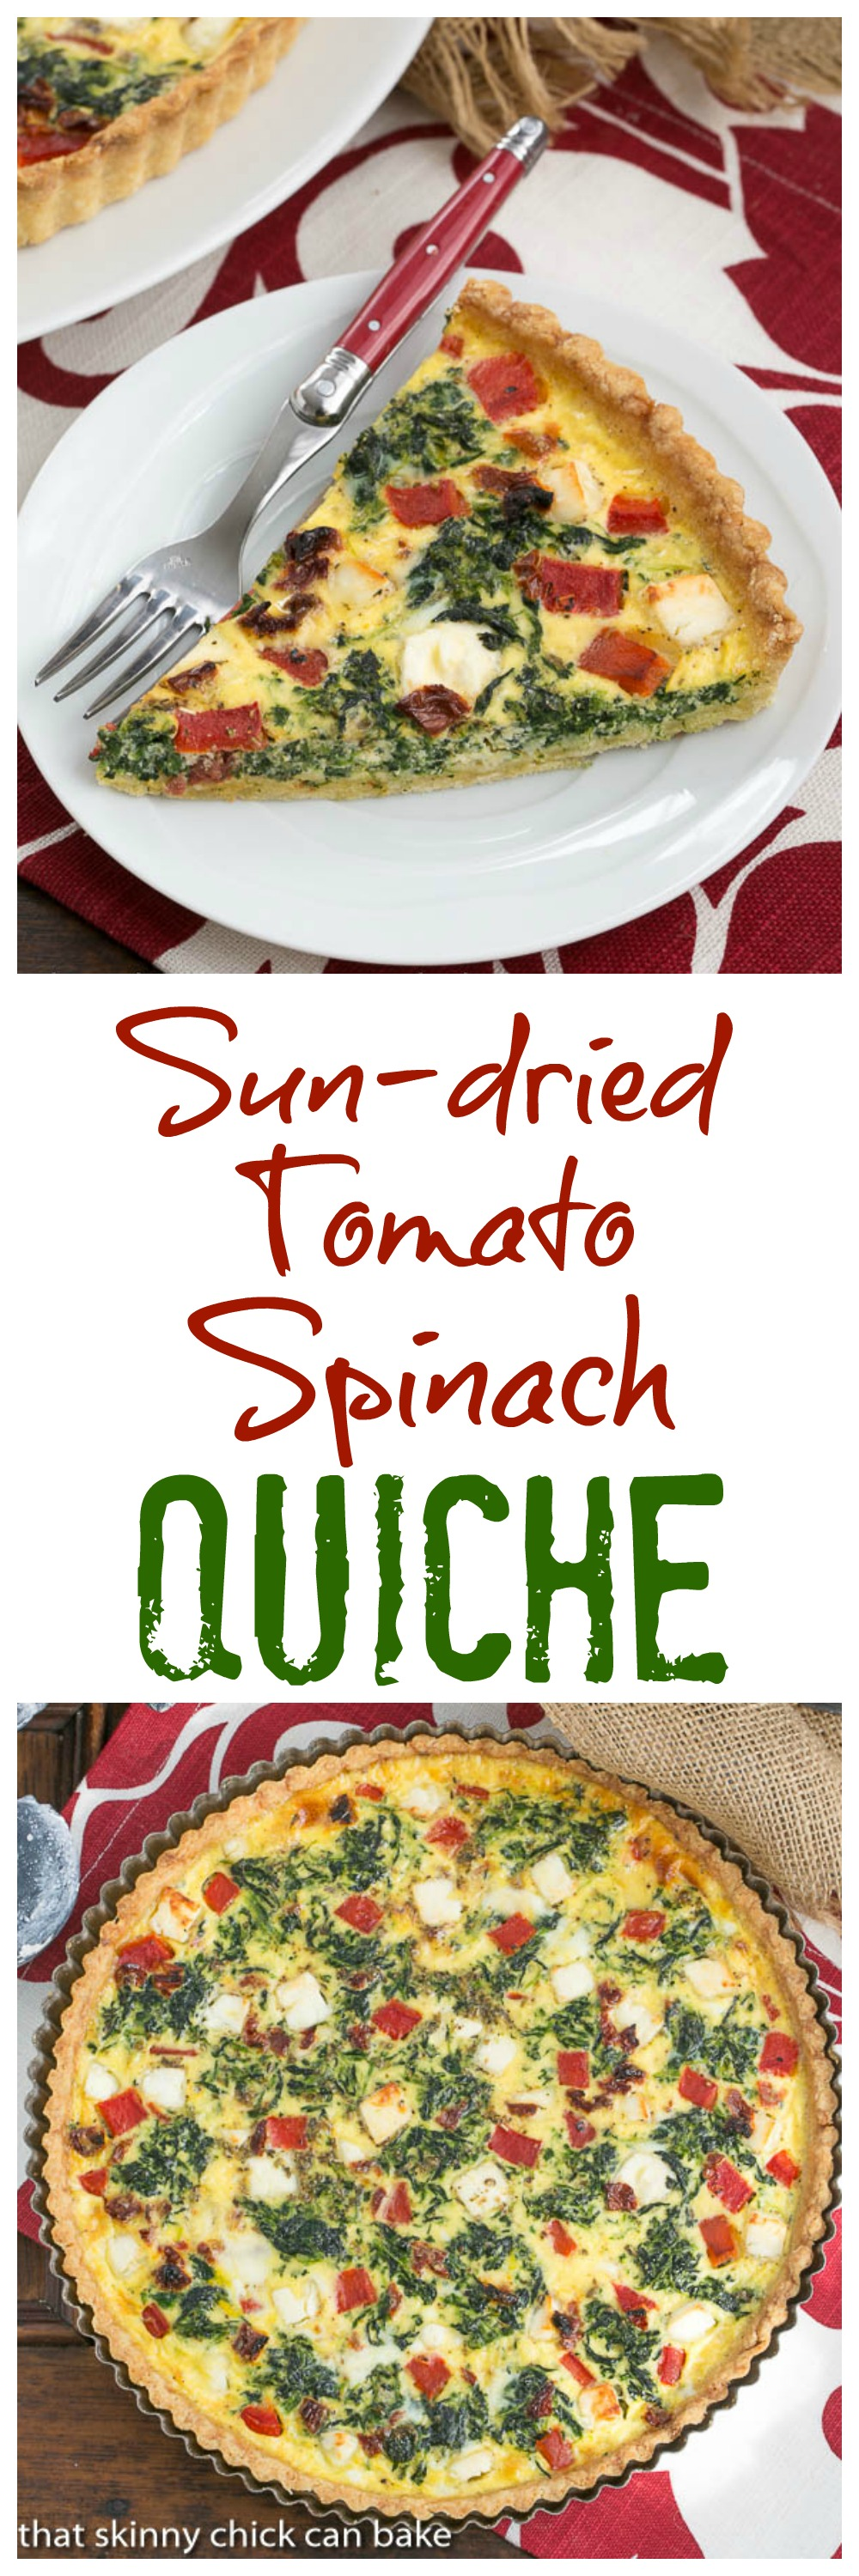 Sun-dried Tomato and Spinach Quiche | A memorable Mediterranean Quiche @lizzydo